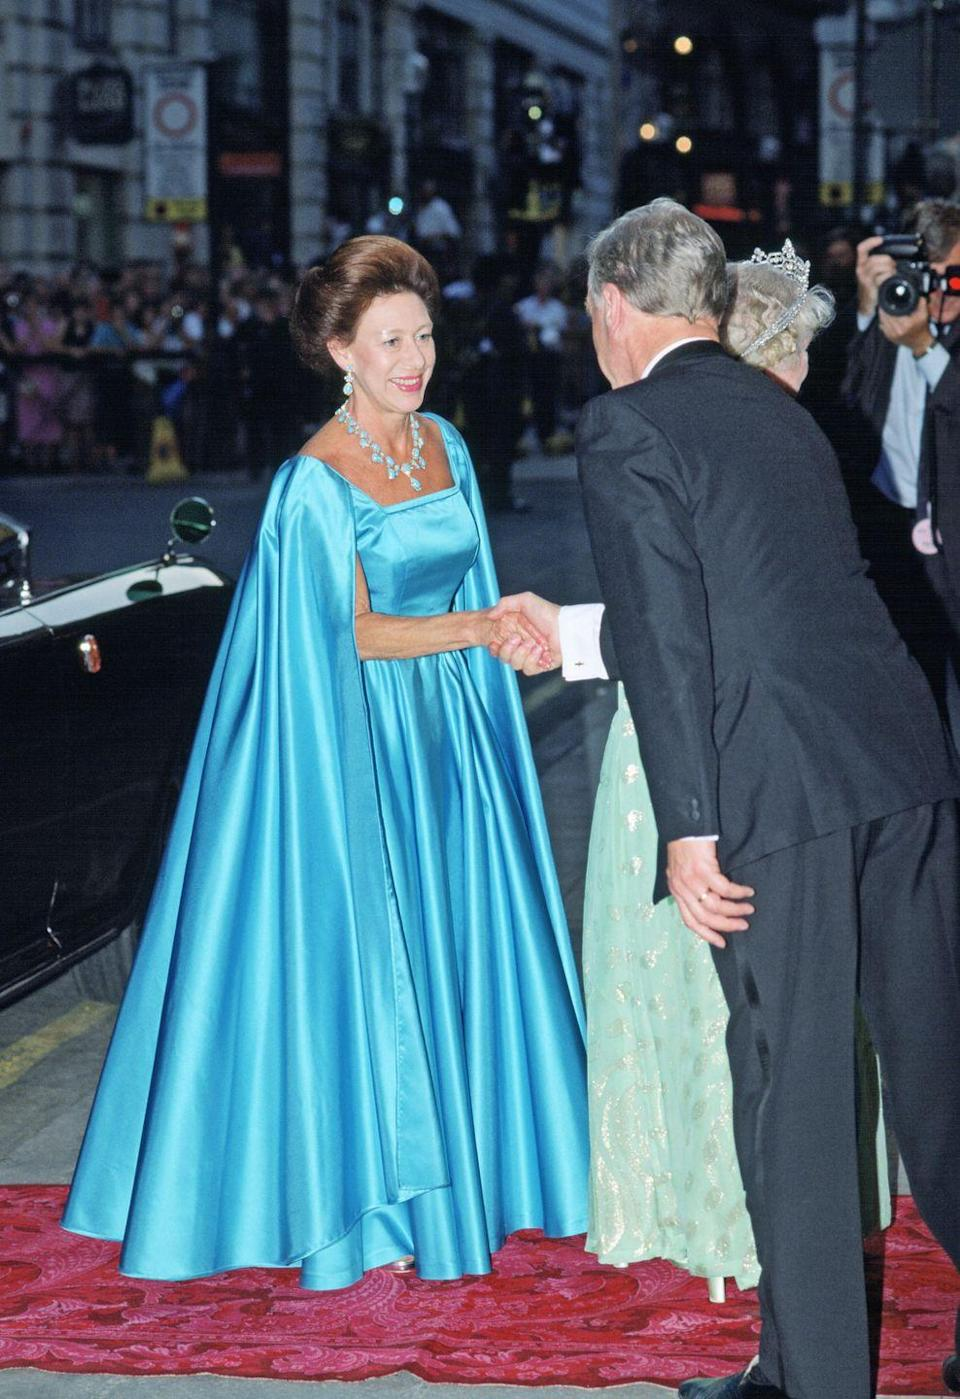 <p>In the summer of 1990, Princess Margaret was on hand to celebrate the Queen Mother's 90th birthday at the London Palladium. She wore this icy-blue number for the occasion, along with a blue necklace and earrings. </p>